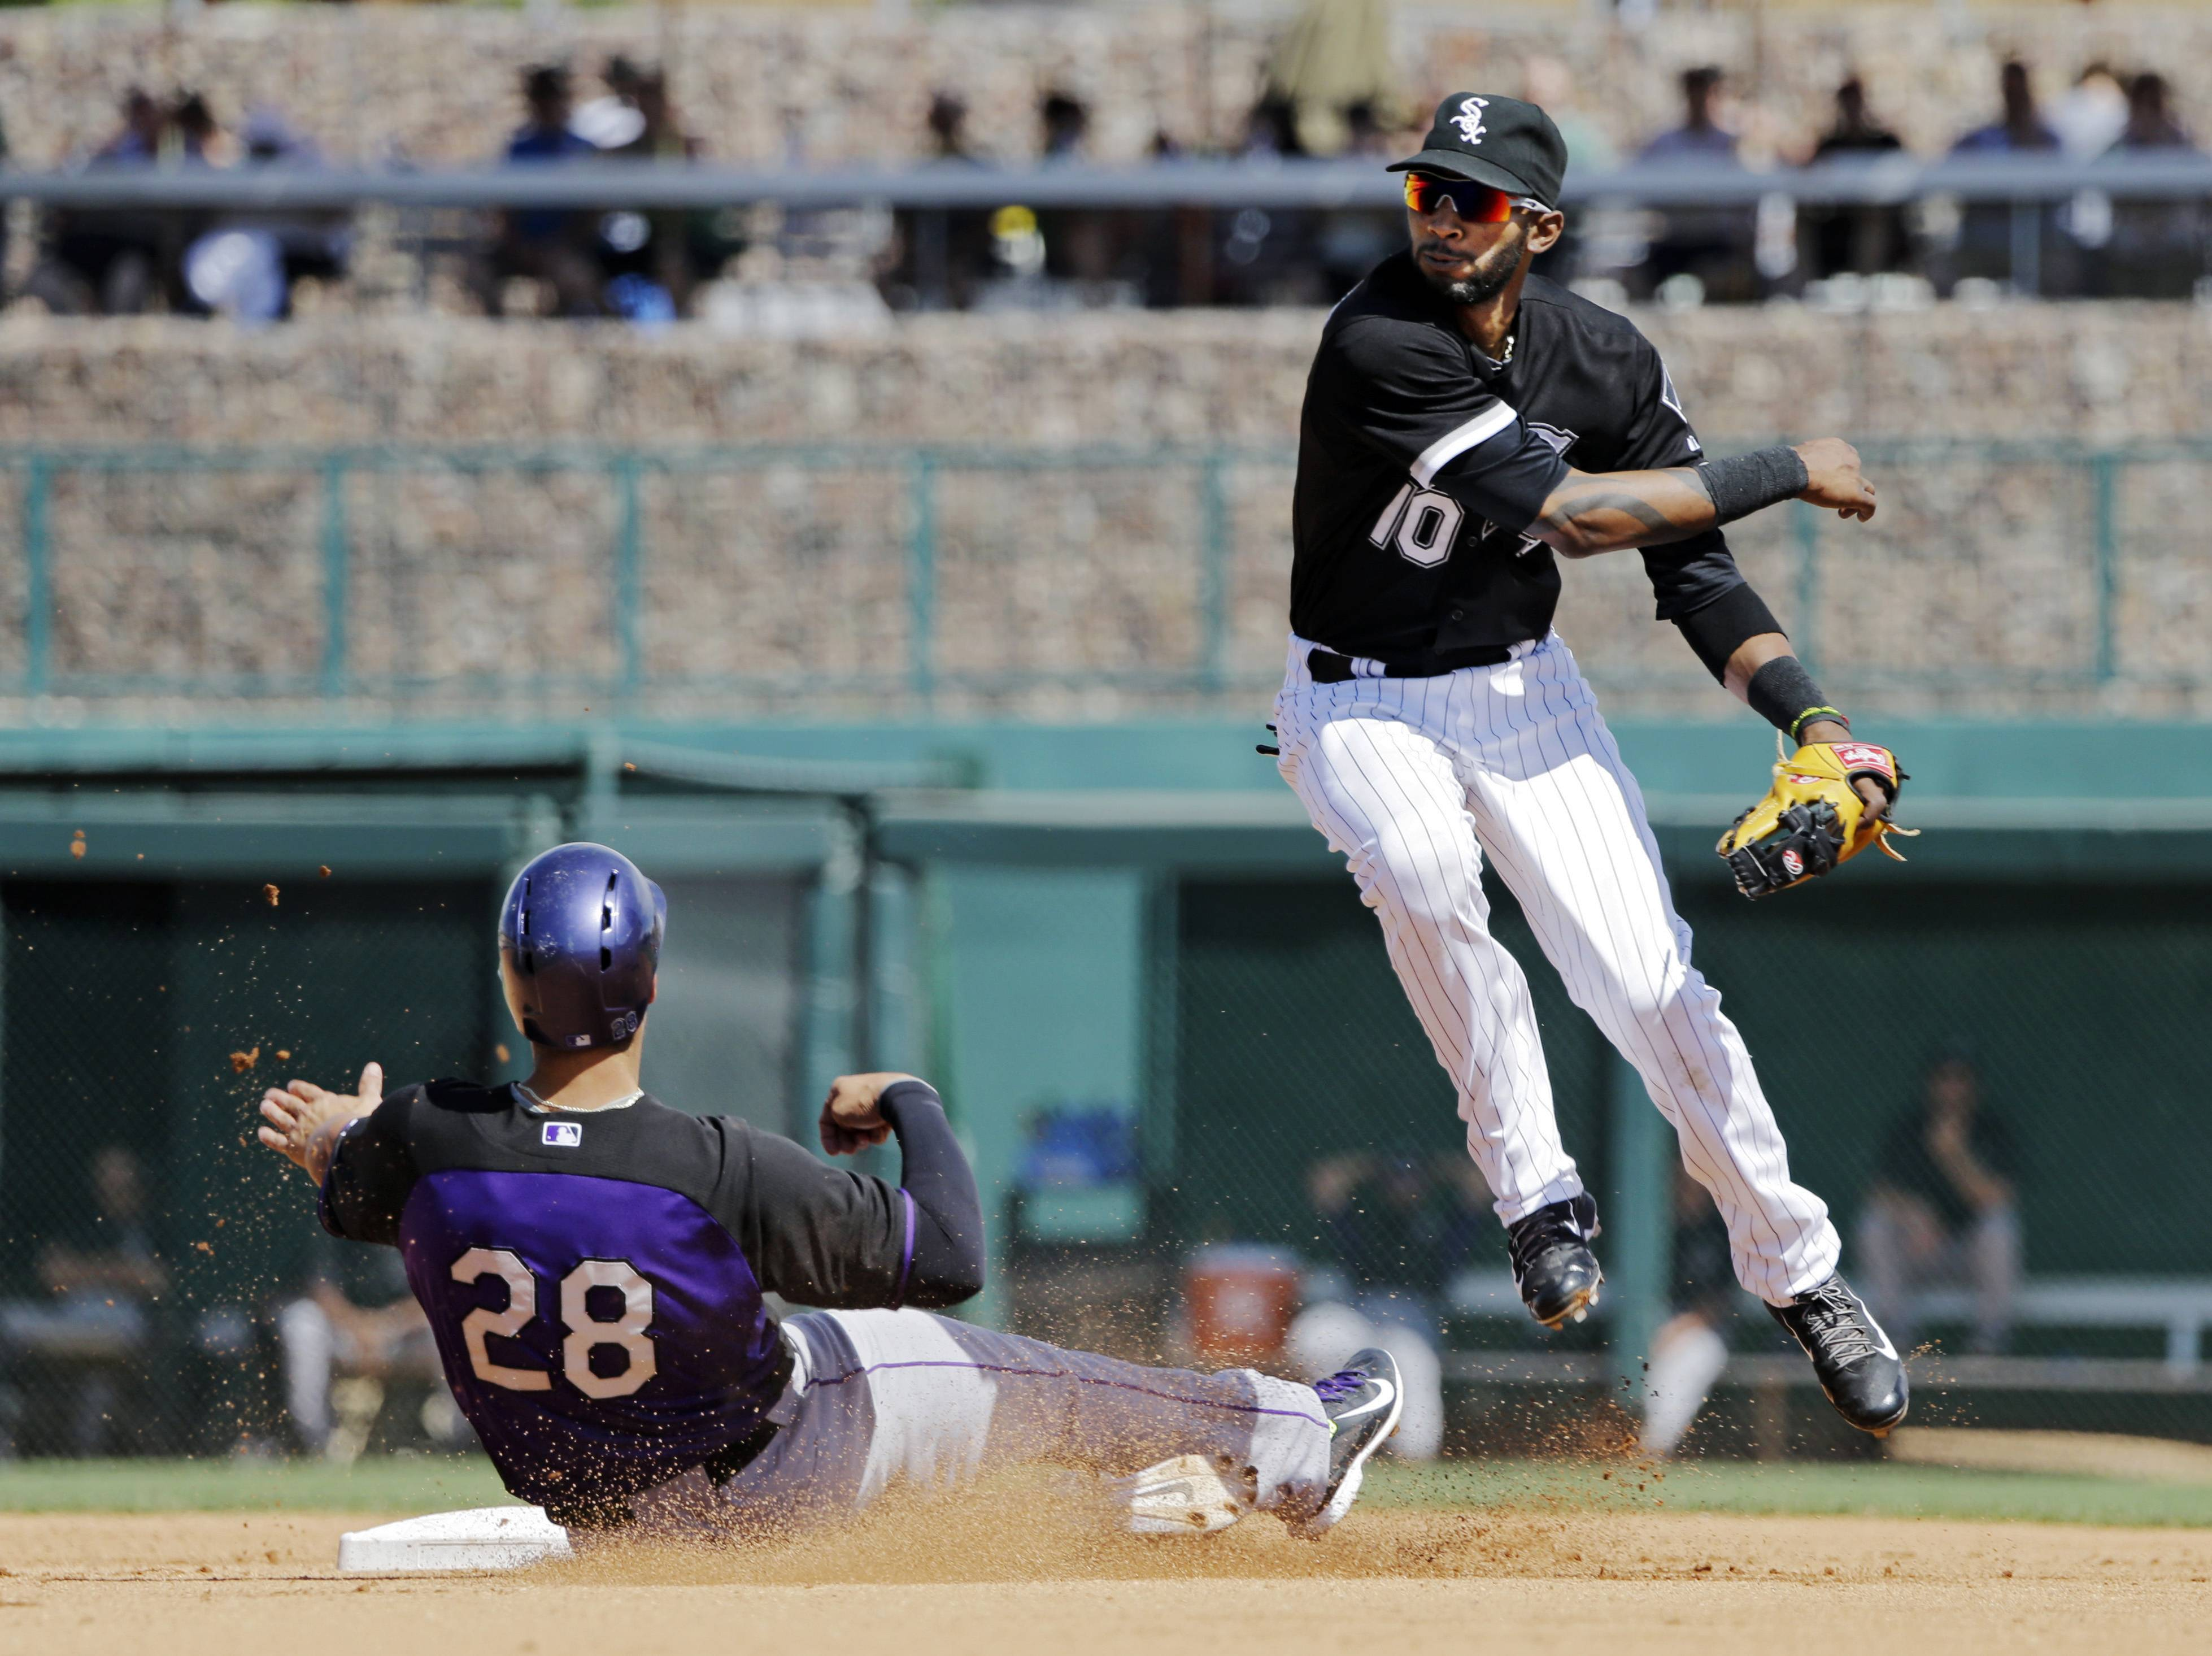 Chicago White Sox shortstop Alexei Ramirez avoids the slide of Colorado Rockies' Nolan Arenado (28) after relaying to first to complete a double play on Justin Morneau in the fourth inning of a spring exhibition baseball game Tuesday, March 25, 2014, in Glendale, Ariz.